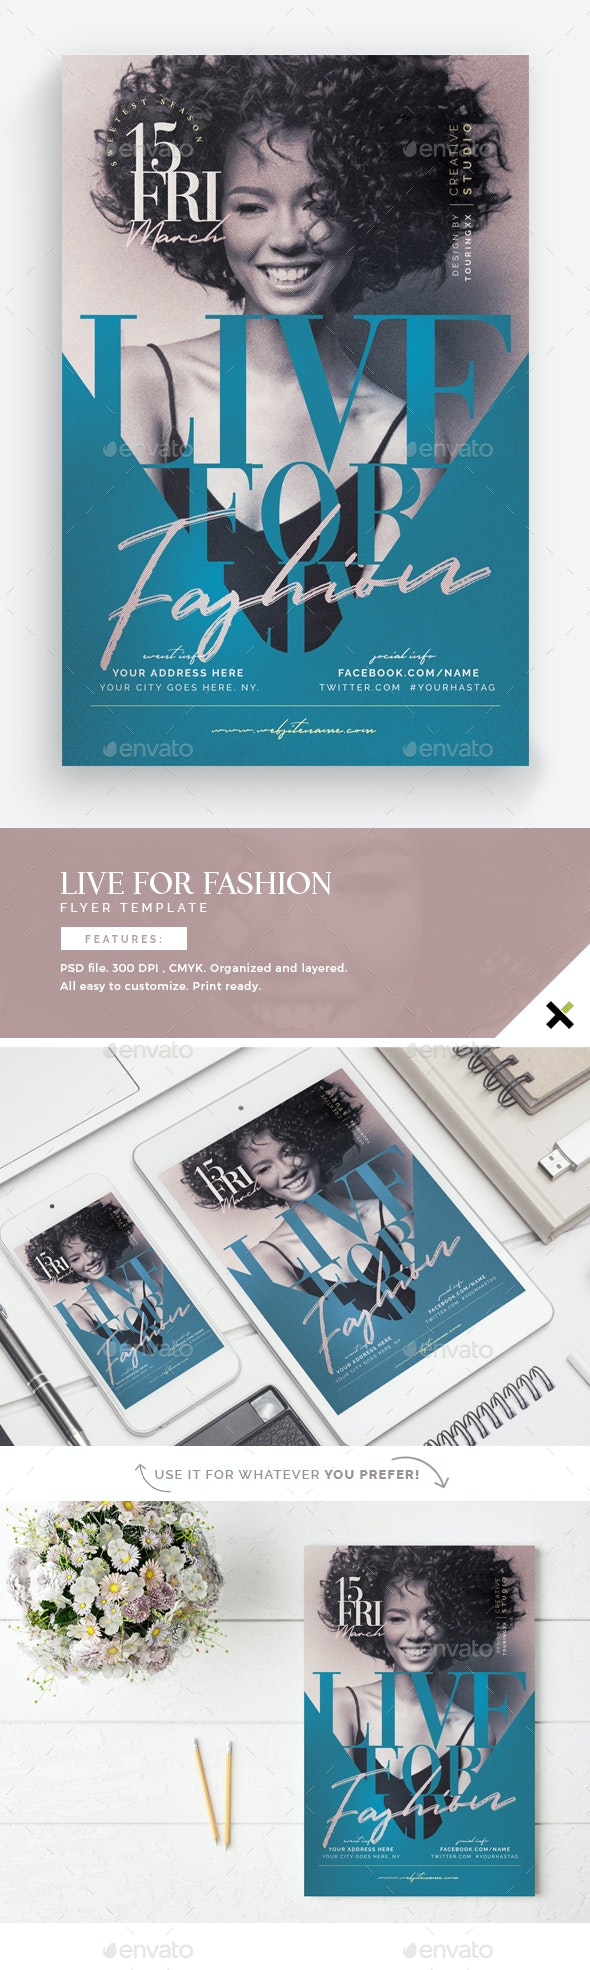 Live For Fashion Flyer Template - Flyers Print Templates